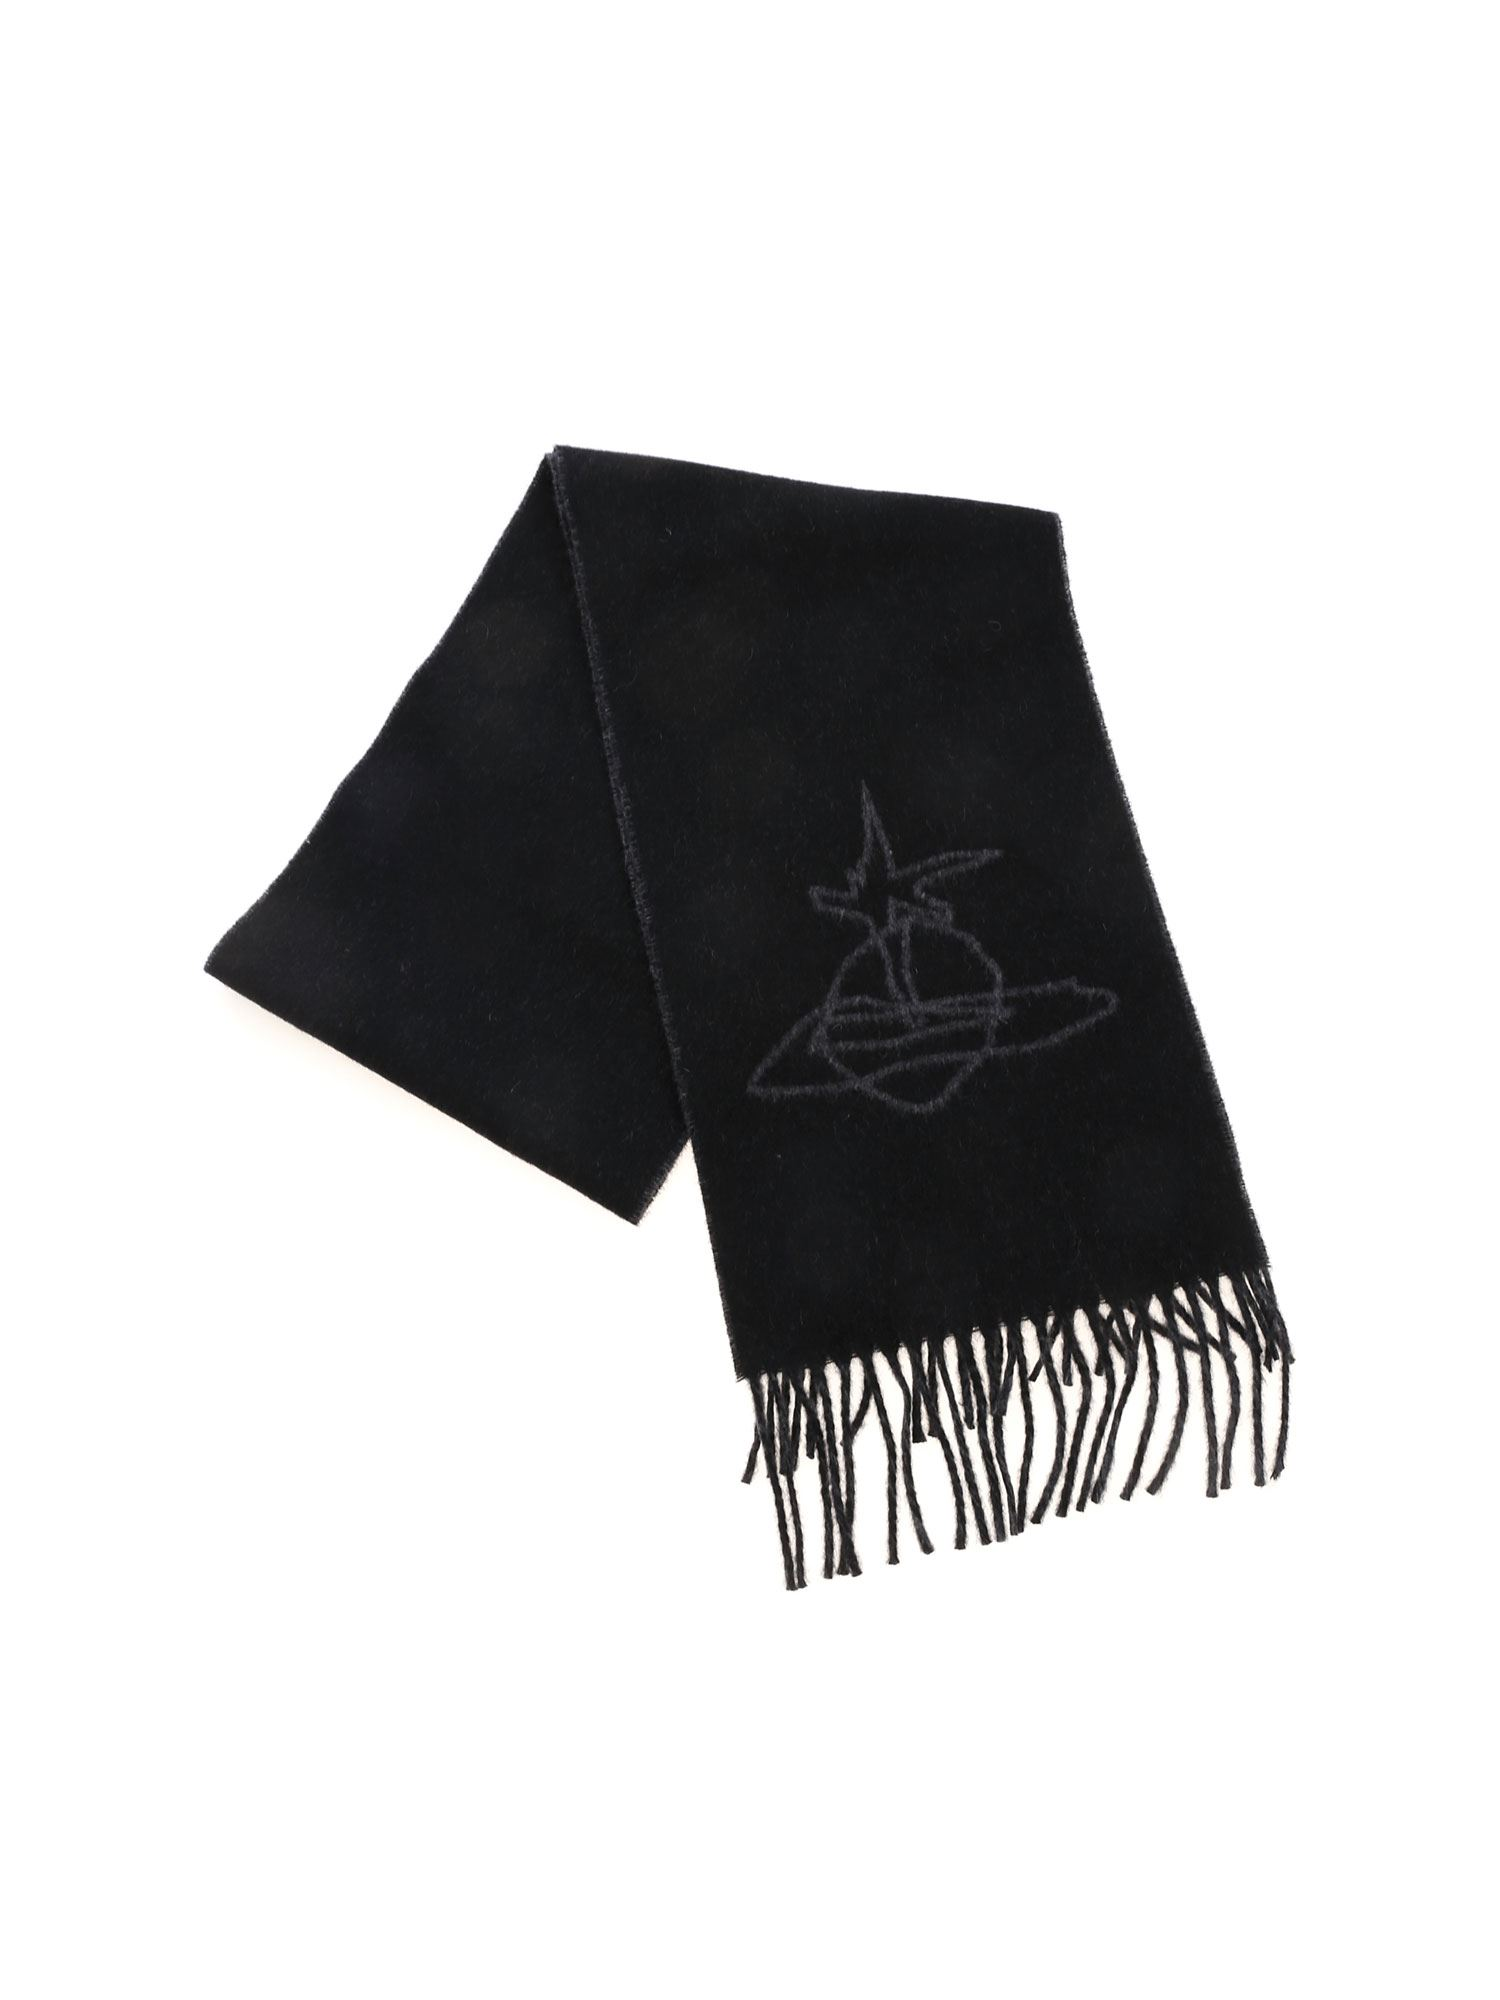 Vivienne Westwood SCRIBBLE ORB SCARF IN BLACK AND GRAY